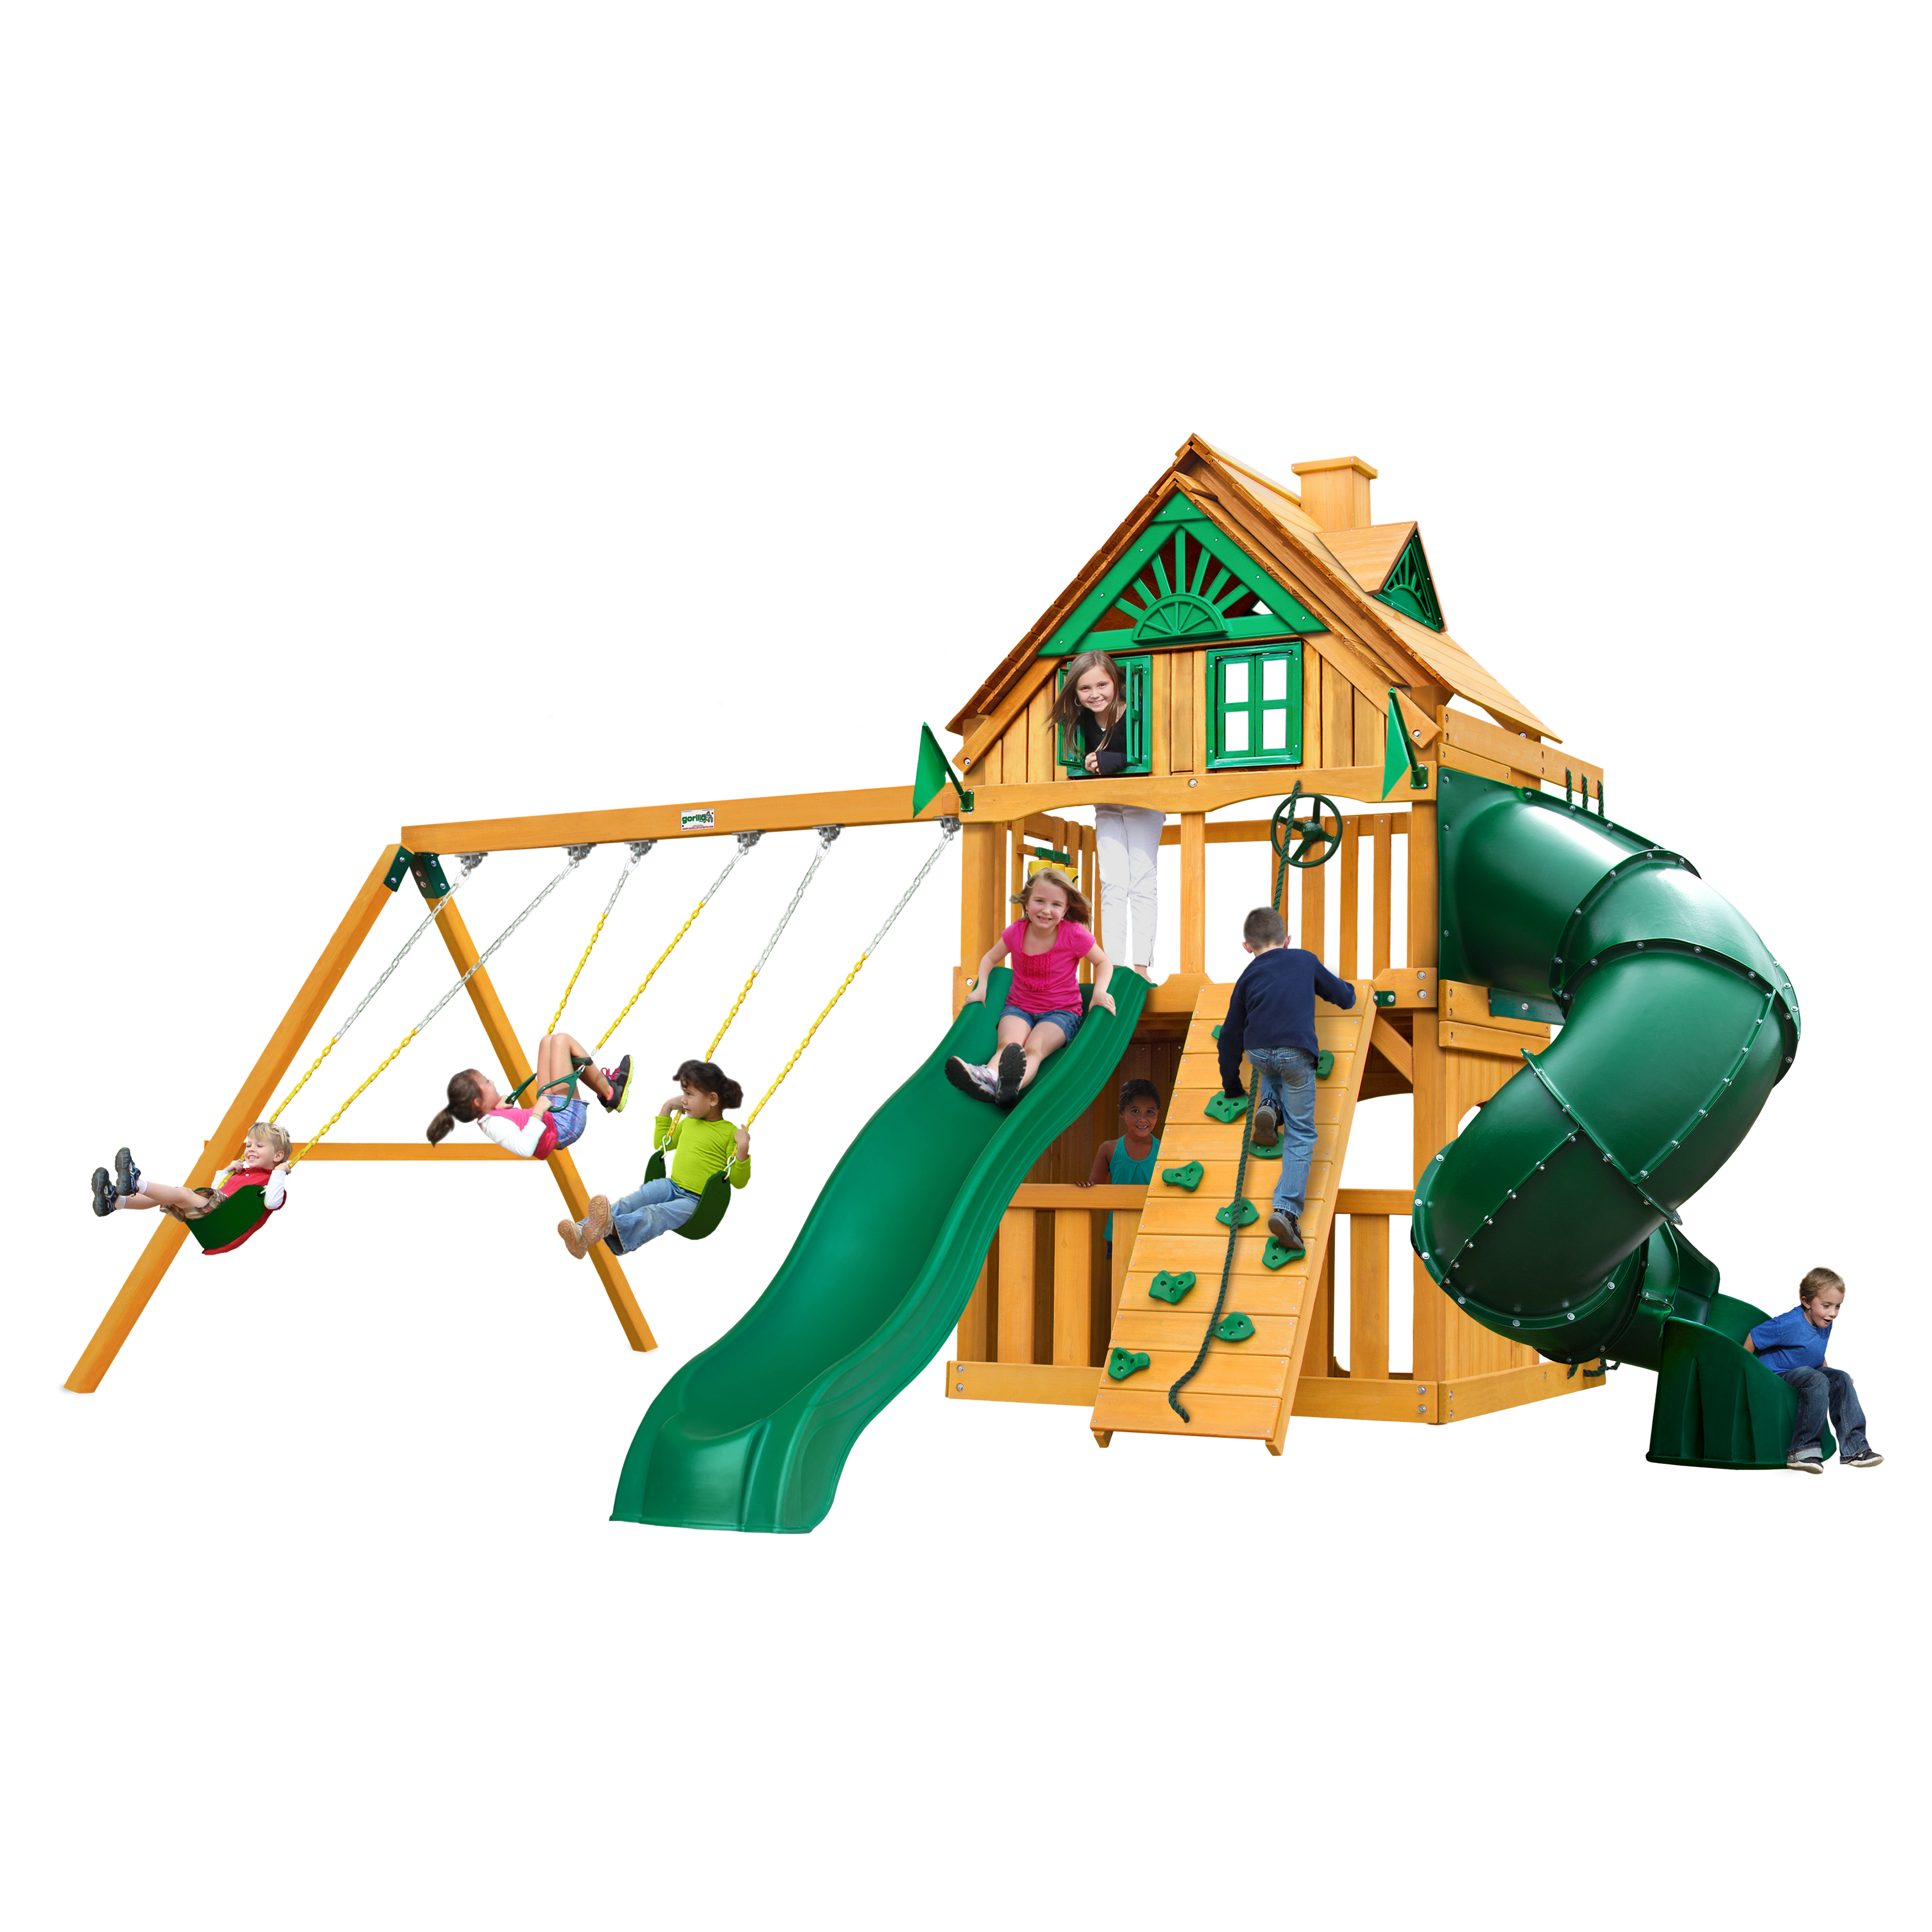 Mountaineer Clubhouse Treehouse Cedar Swing Set with Natural Cedar Posts